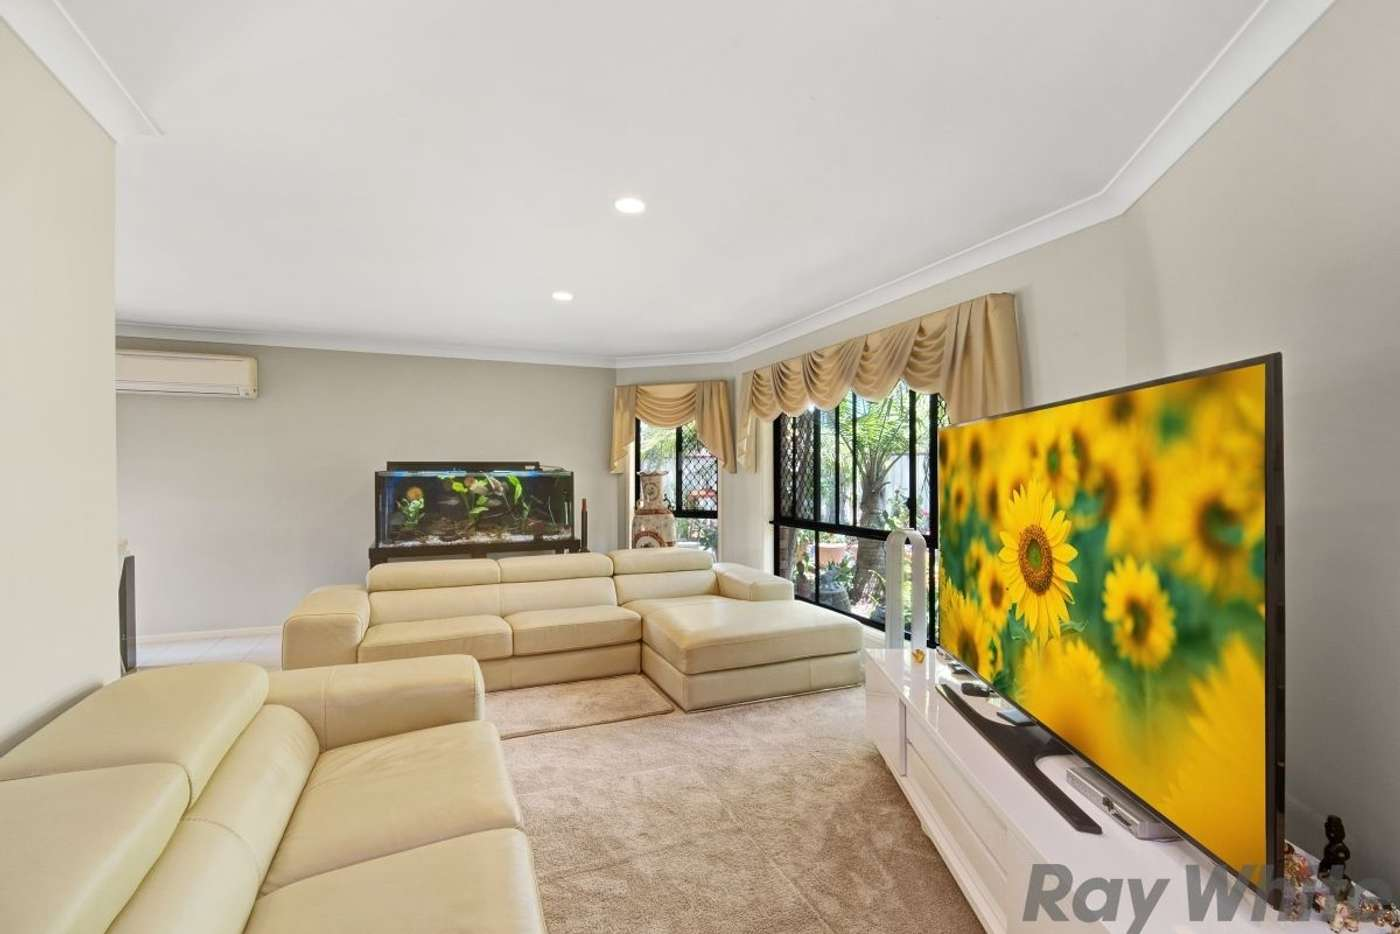 Sixth view of Homely house listing, 29 Spencer Avenue, Deception Bay QLD 4508